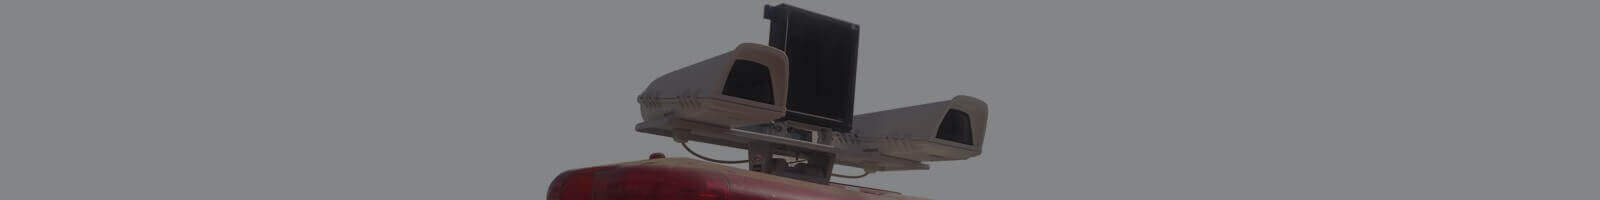 VehiScan® - Vehicle Mounted Automatic Number Plate Recognition System